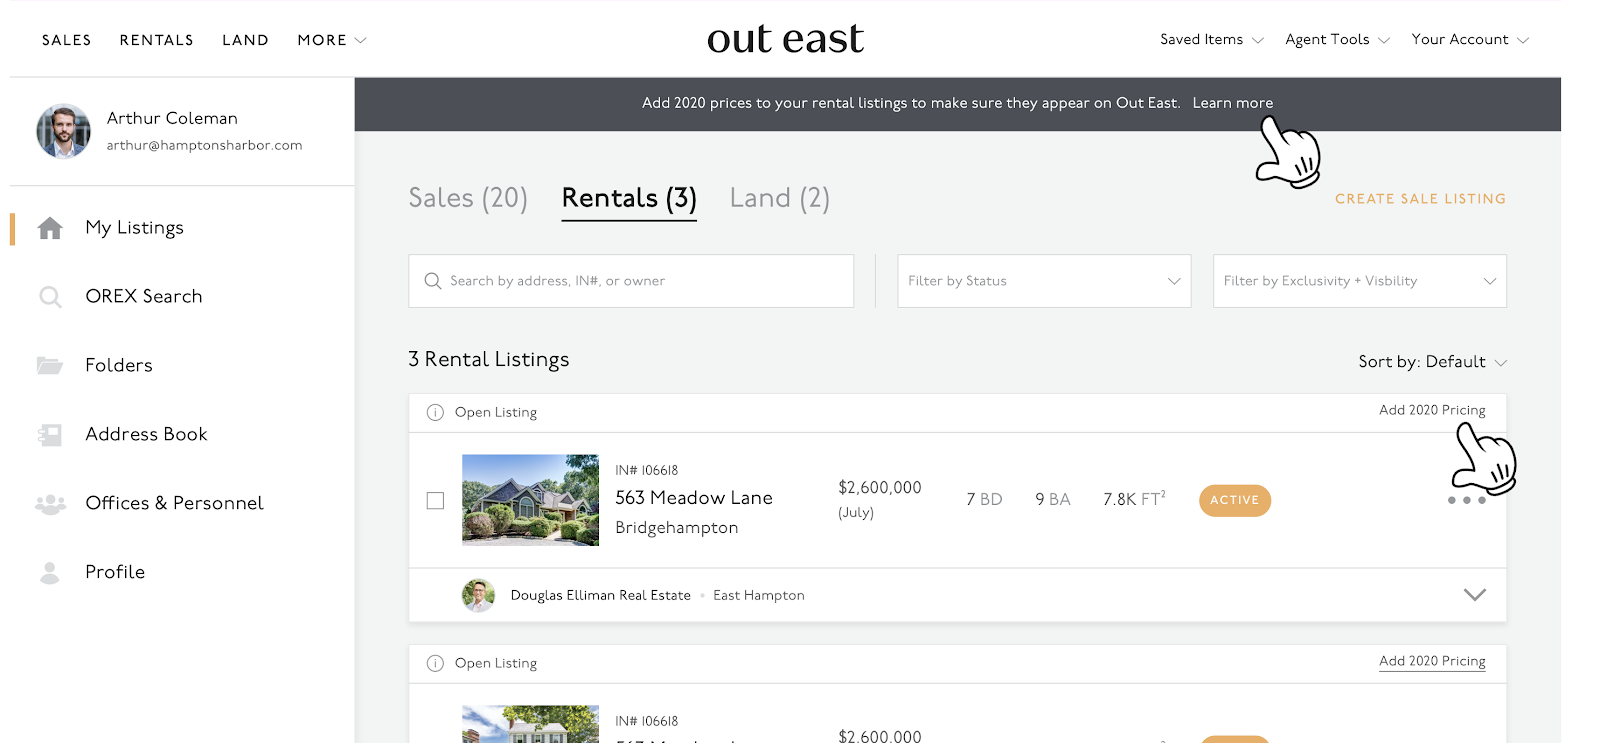 Add_2020_prices_to_your_rental_listings.png